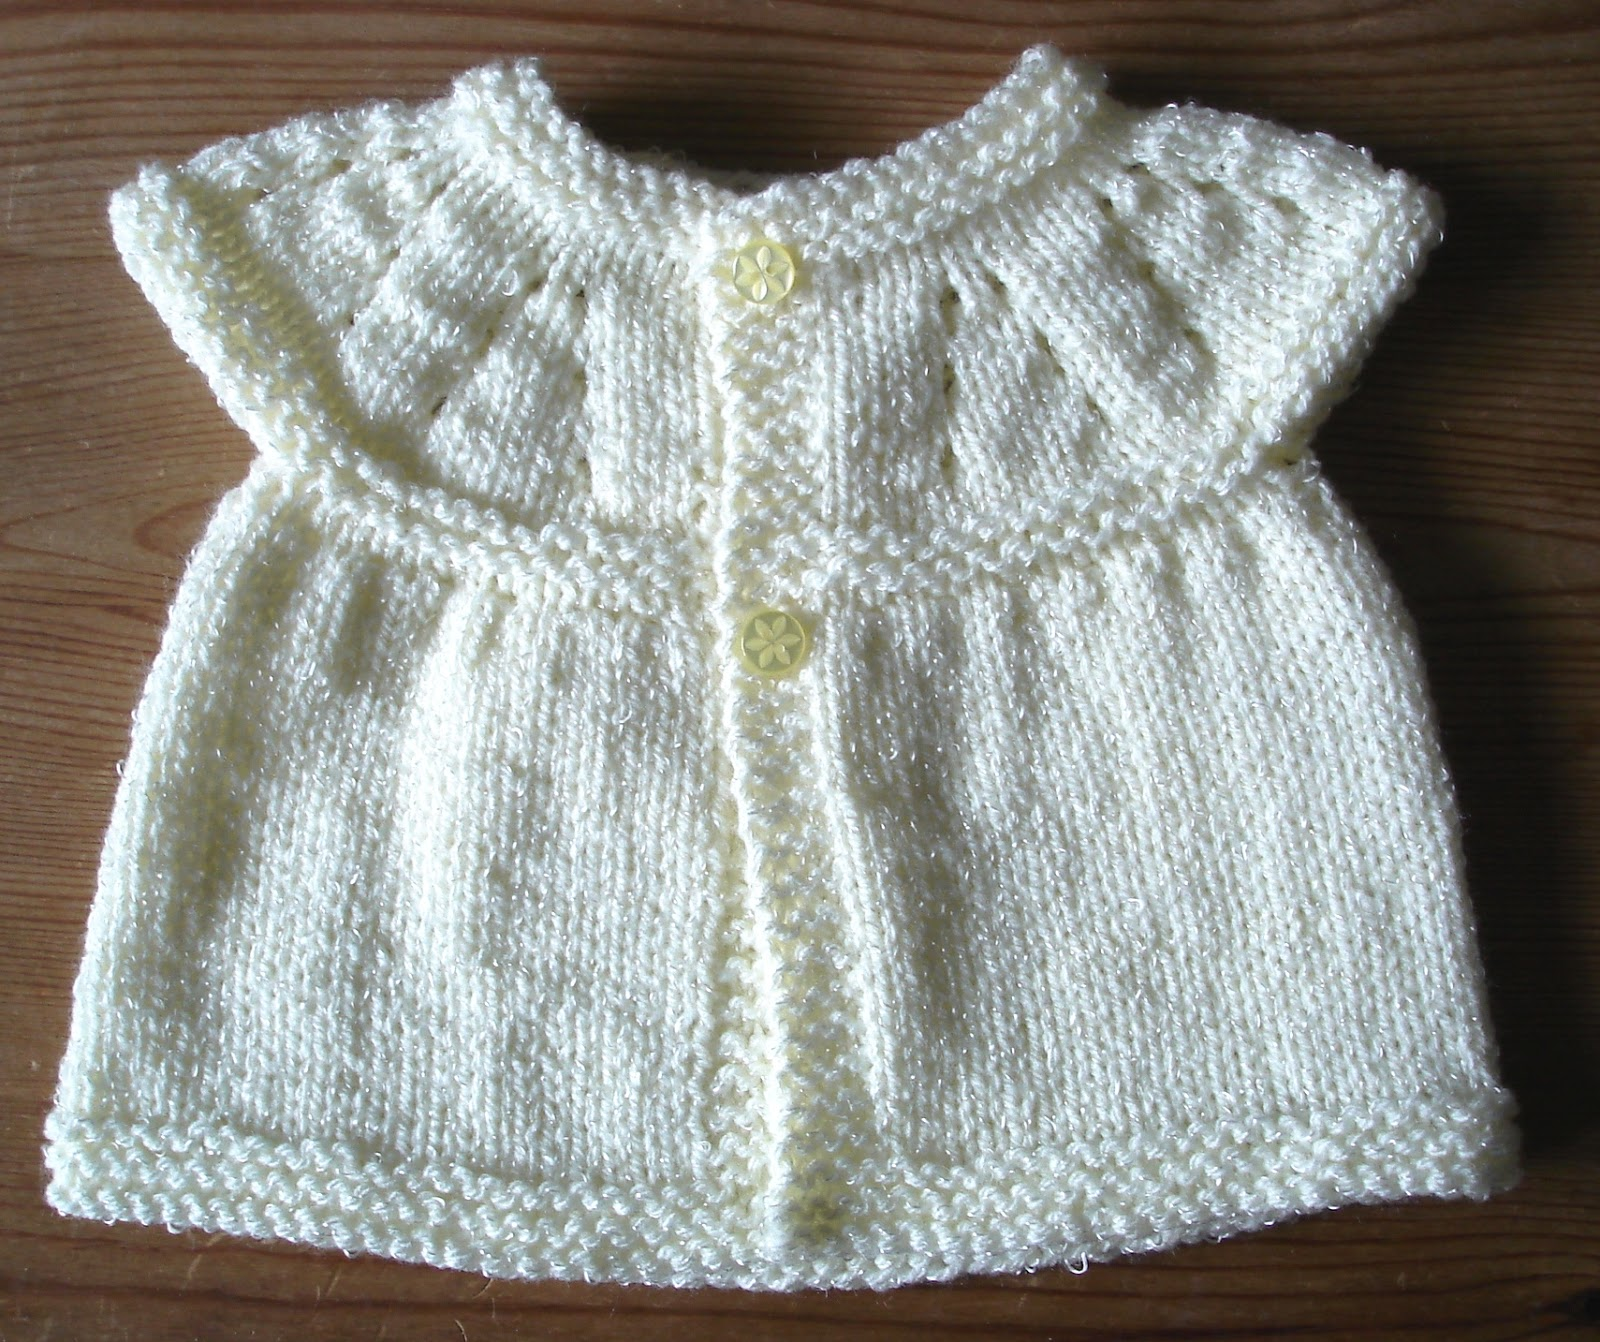 mariannas lazy daisy days: All-in-one Knitted Baby Tops